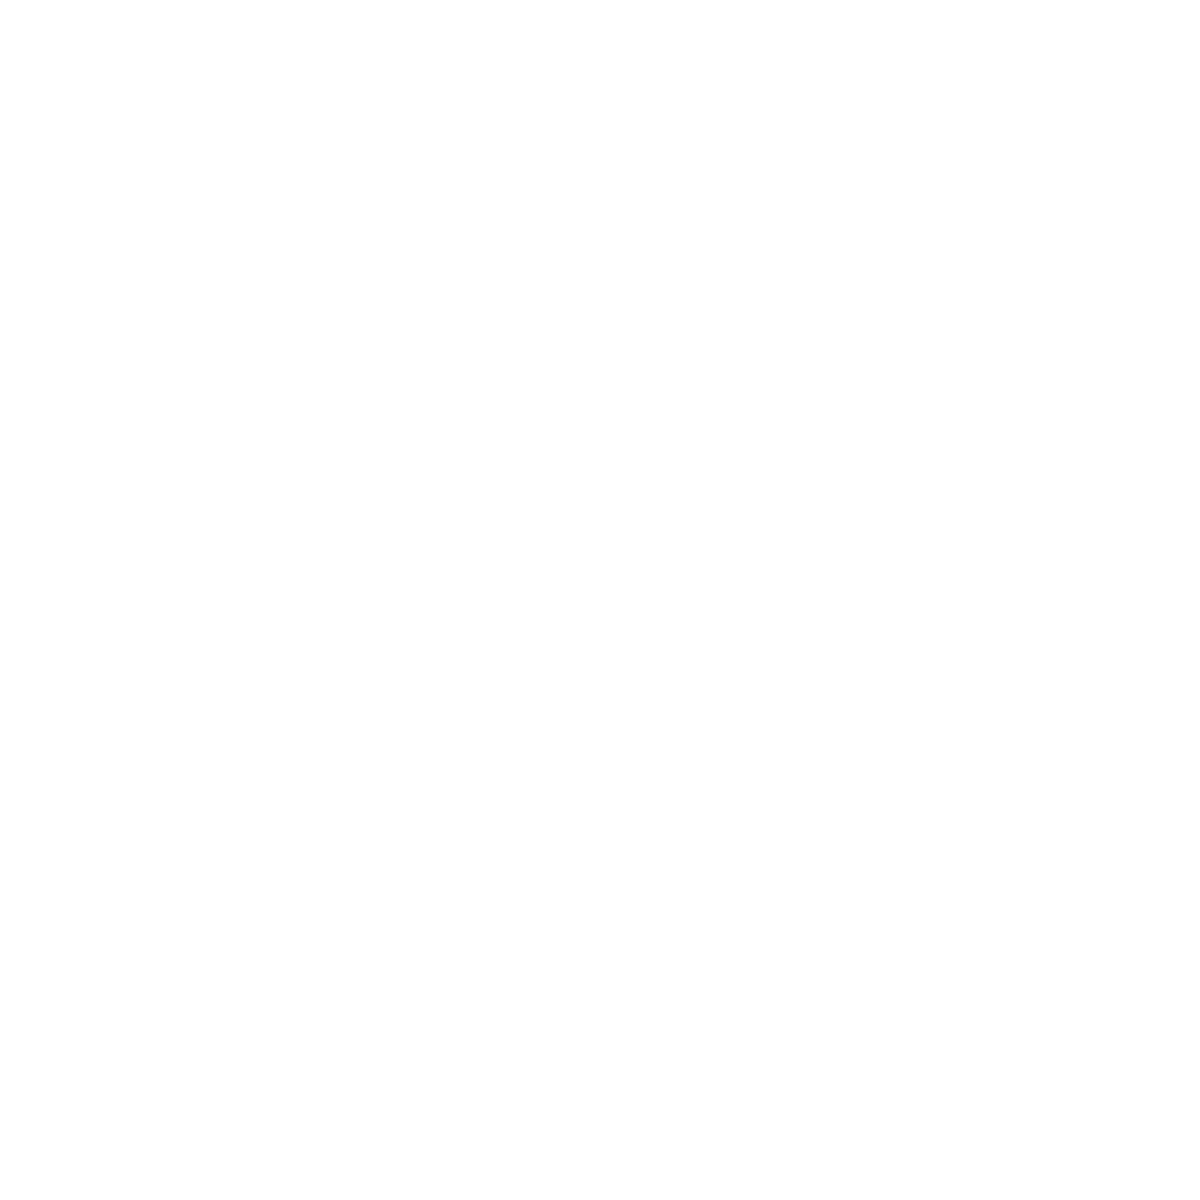 Your Secret Closet